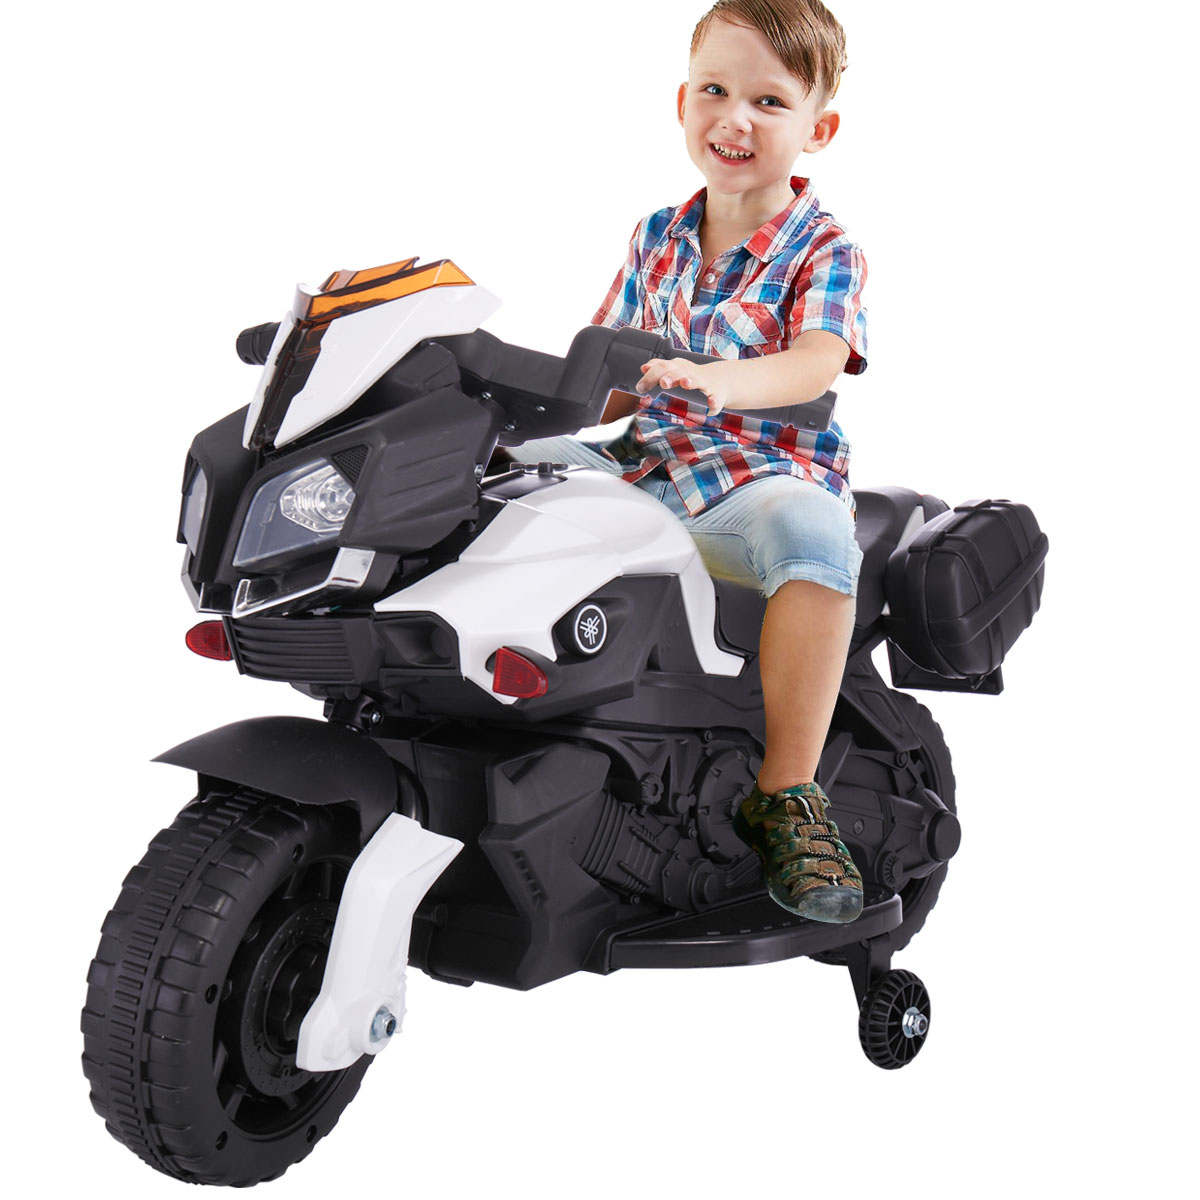 Jaxpety 6V Kids Ride On Motorcycle Battery Powered 4 Wheel Car Bicycle Electric Toy New... by Jaxpety